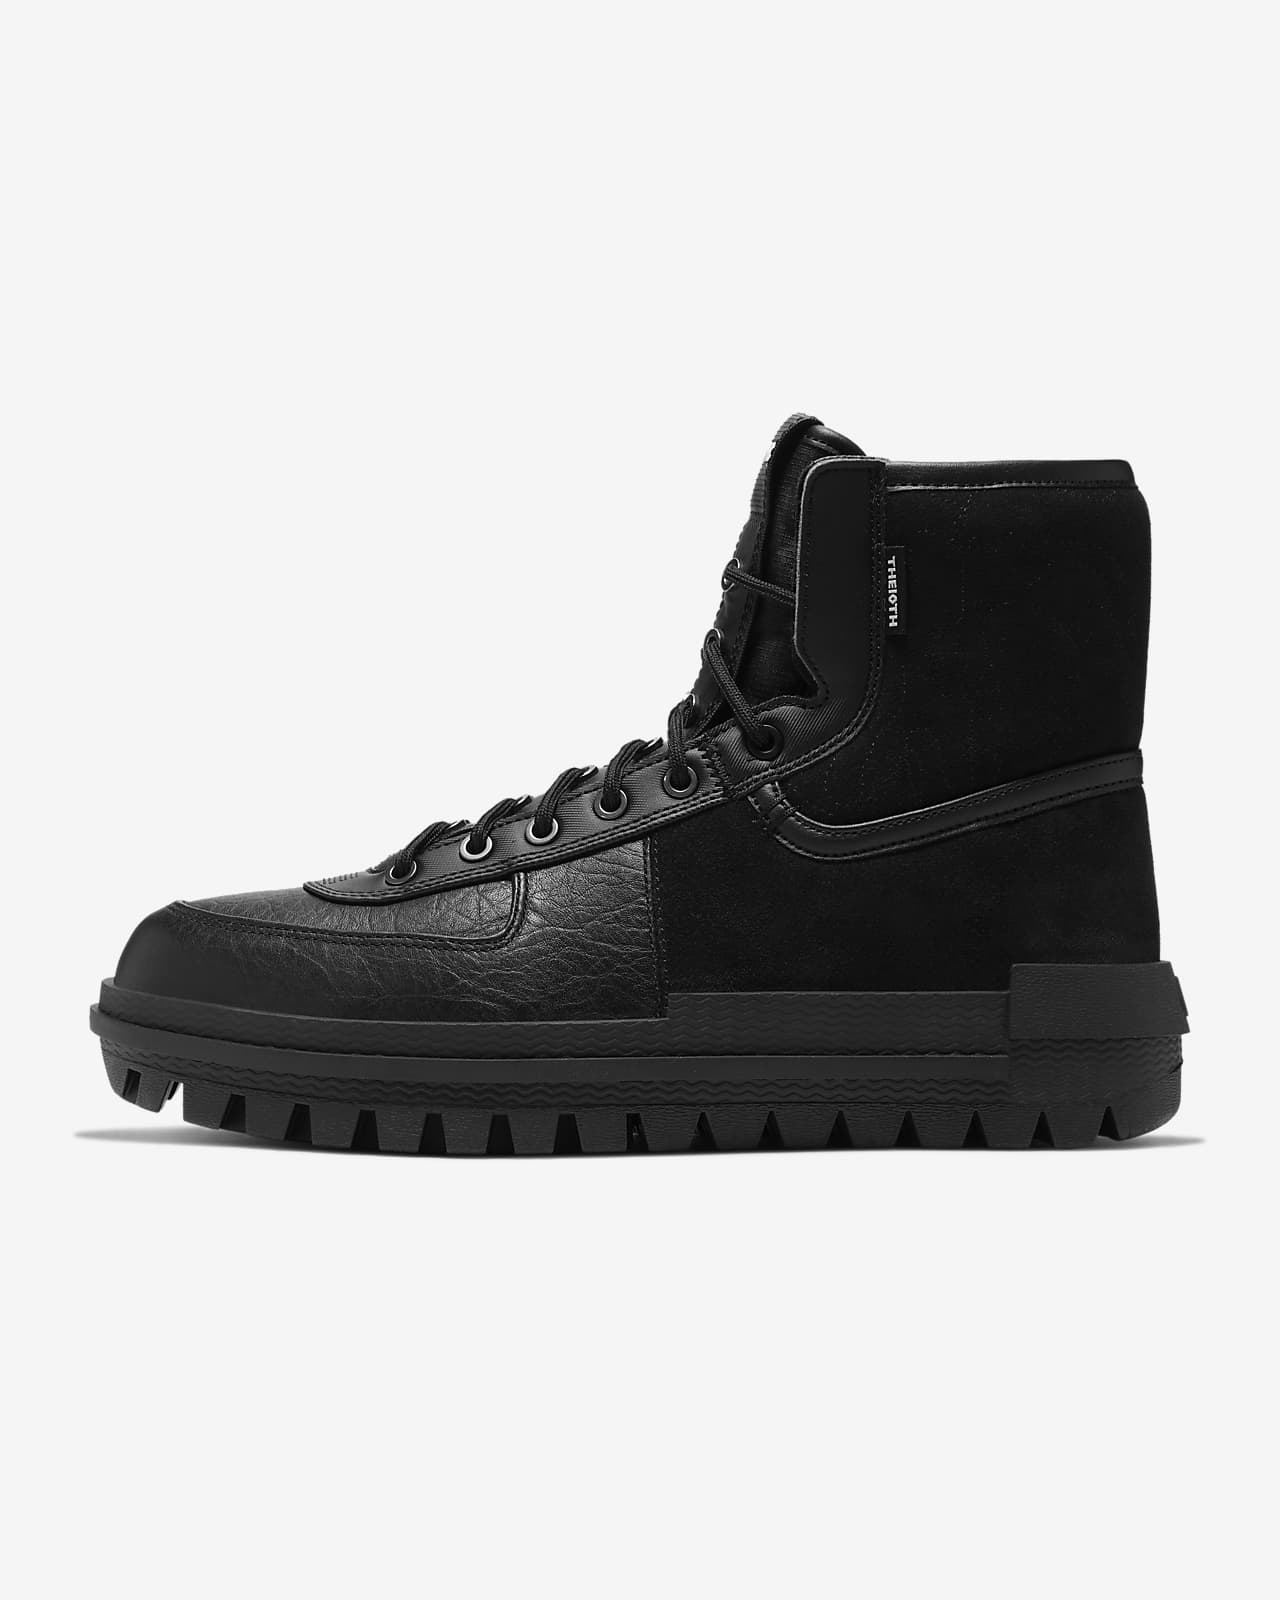 Chaussure Nike Xarr pour Homme